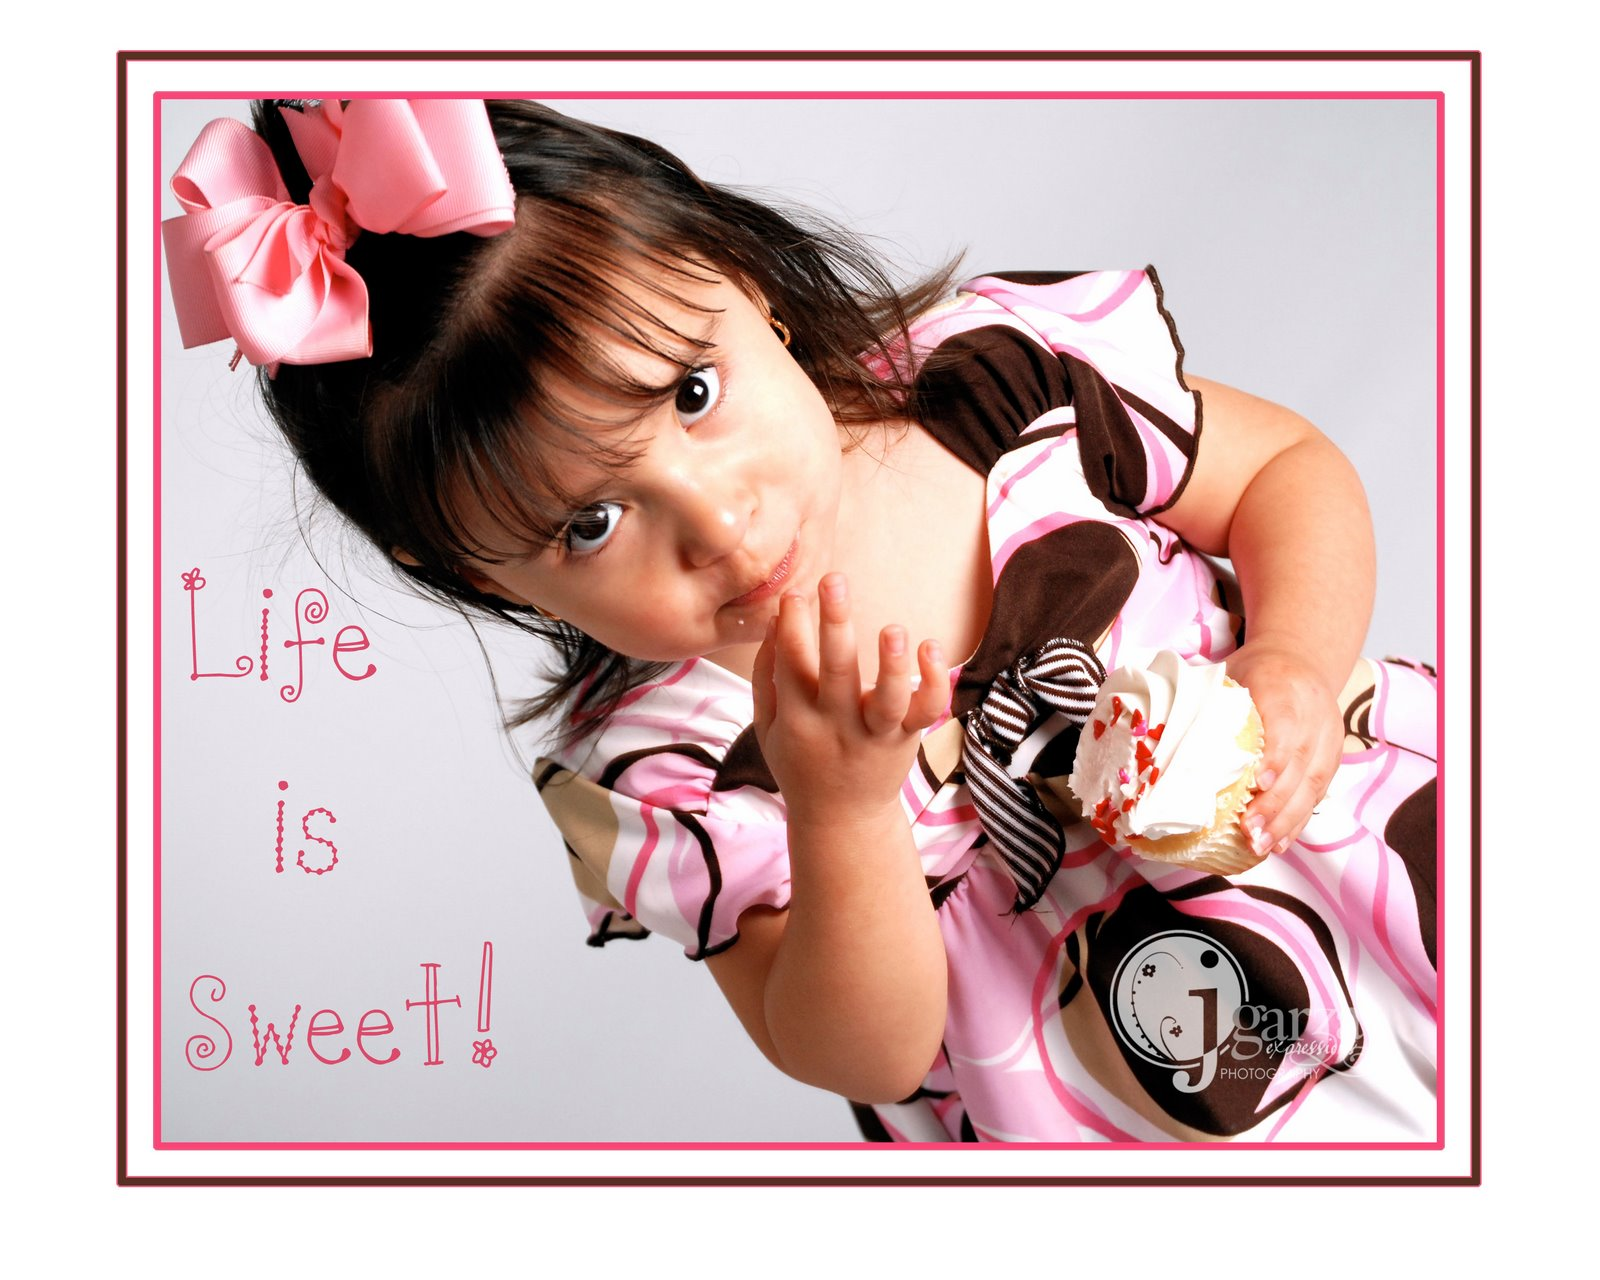 [life+is+sweet]